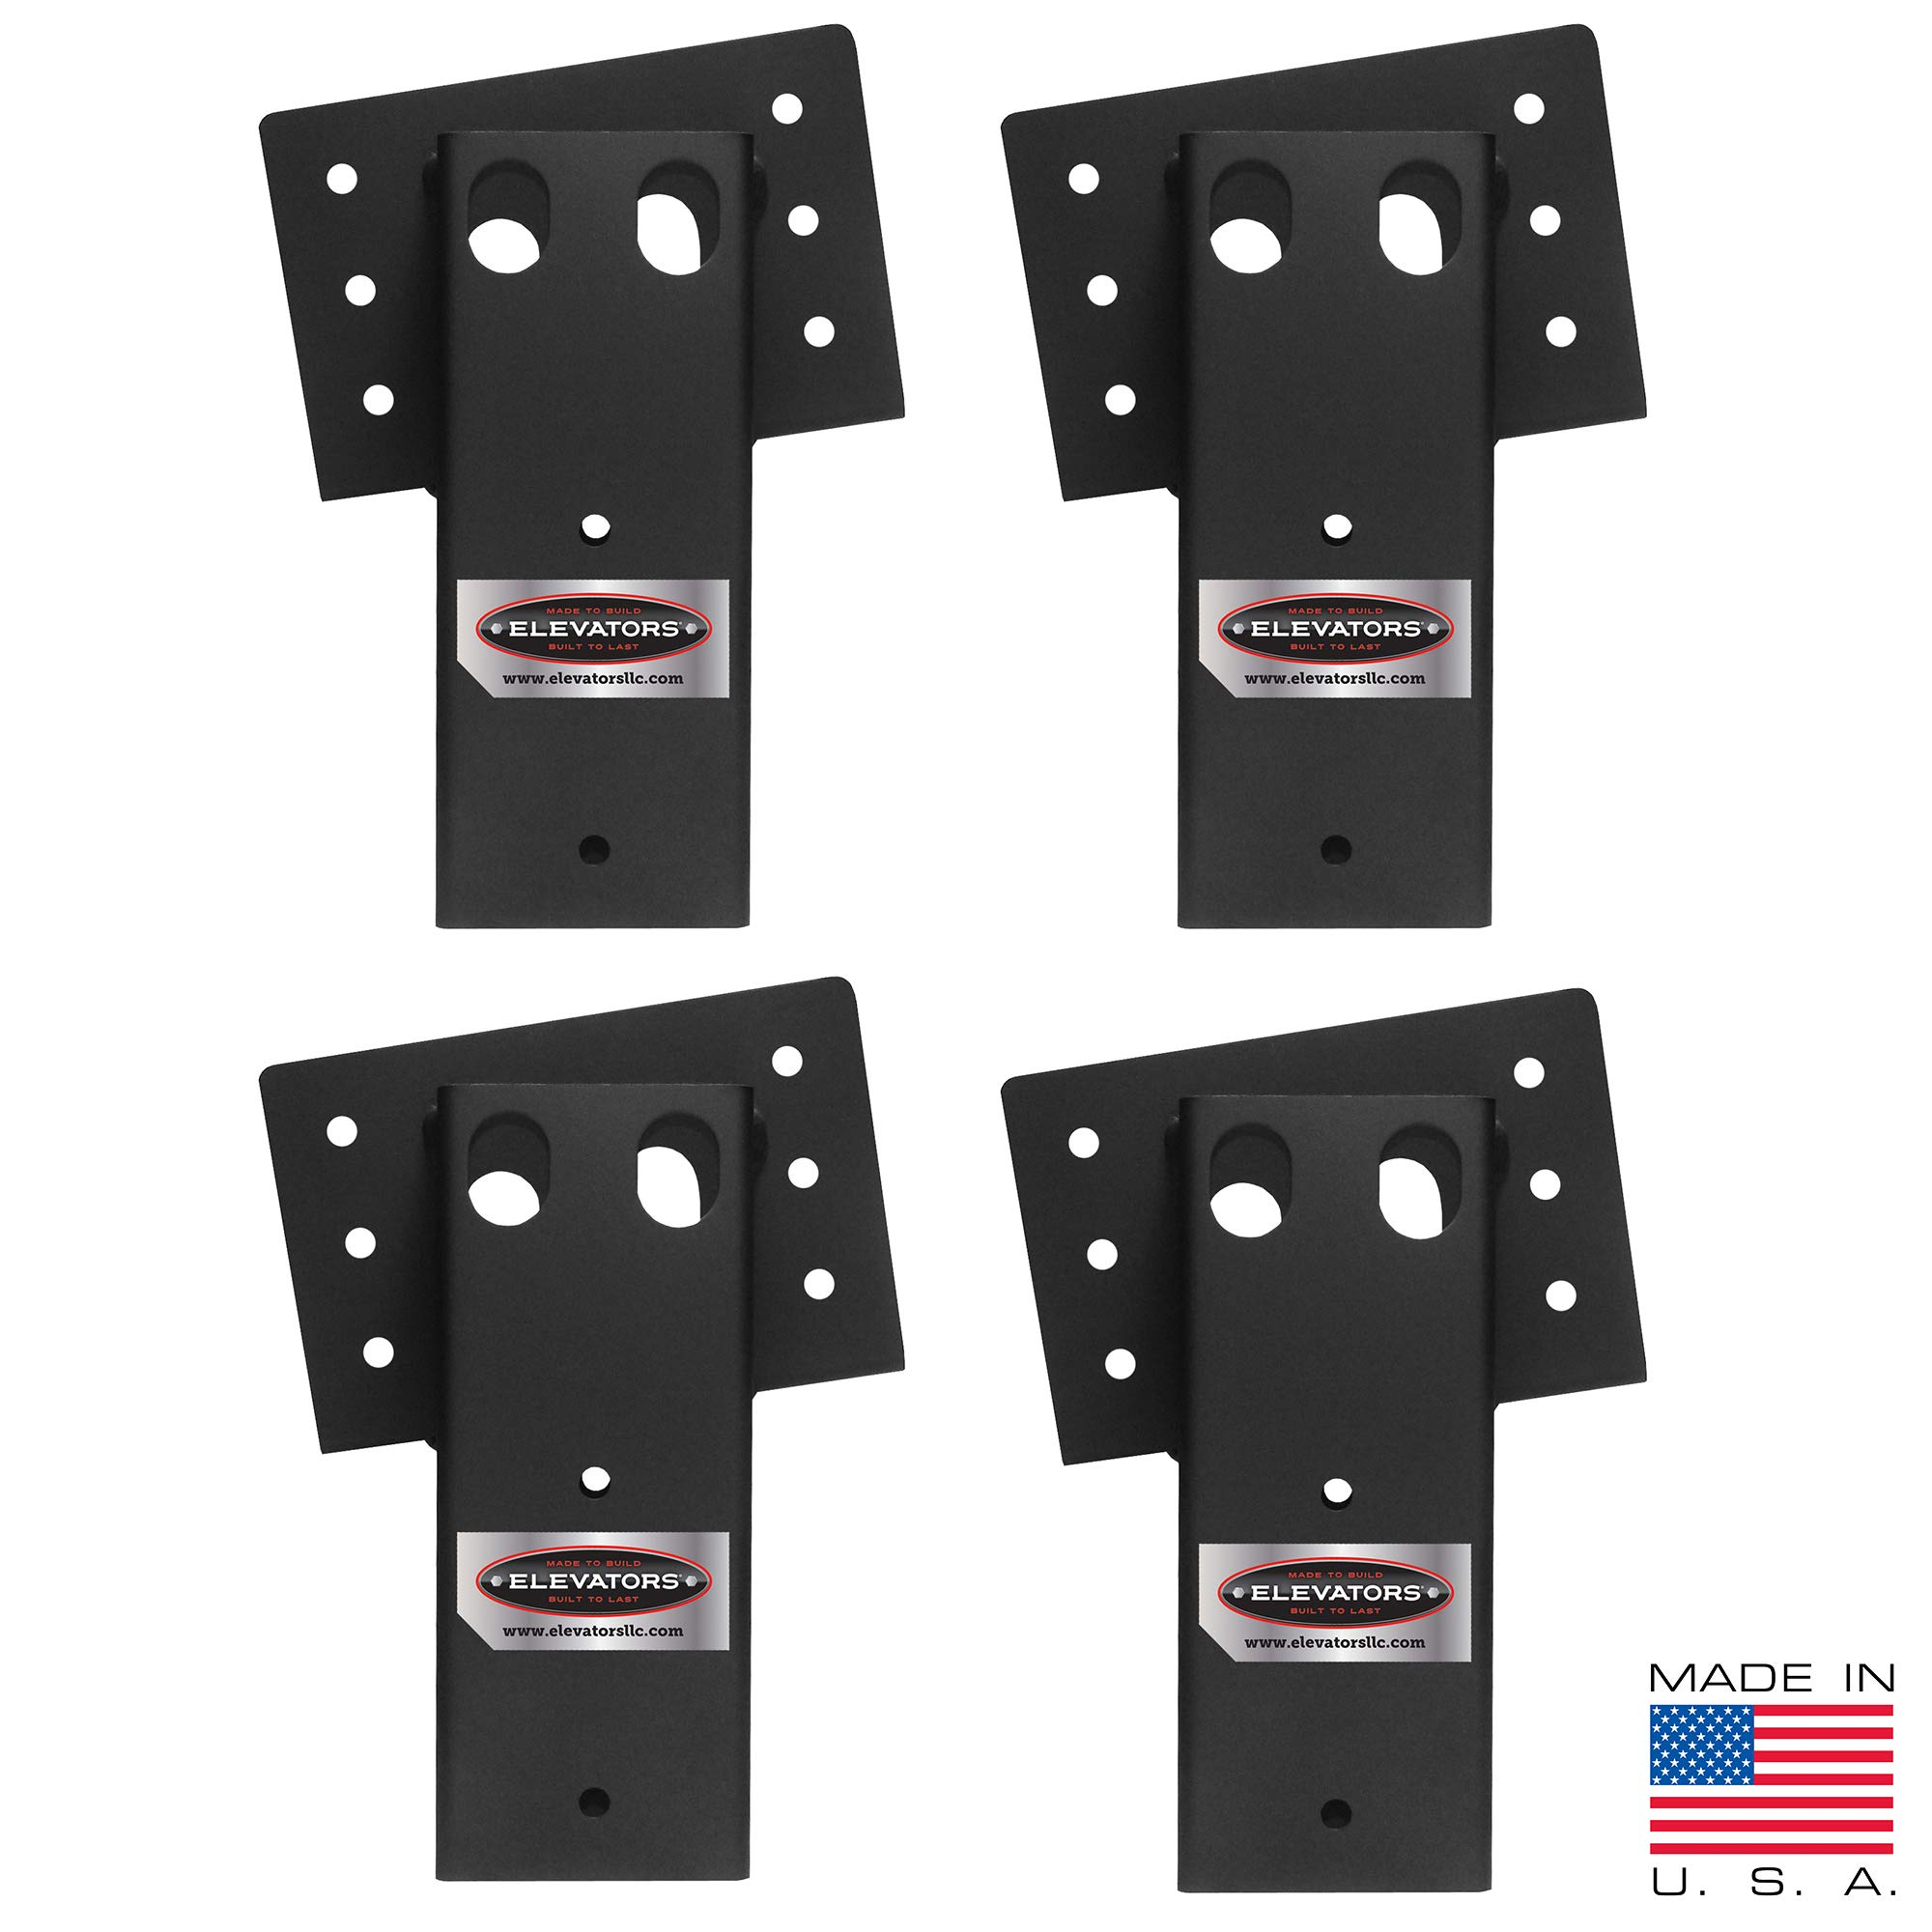 Elevators 4x4 Brackets for Deer Blinds, Playhouses, Swing Sets, Tree Houses. Made in The USA with Premium Construction Grade Steel. (1 Set of 4) by Elevators